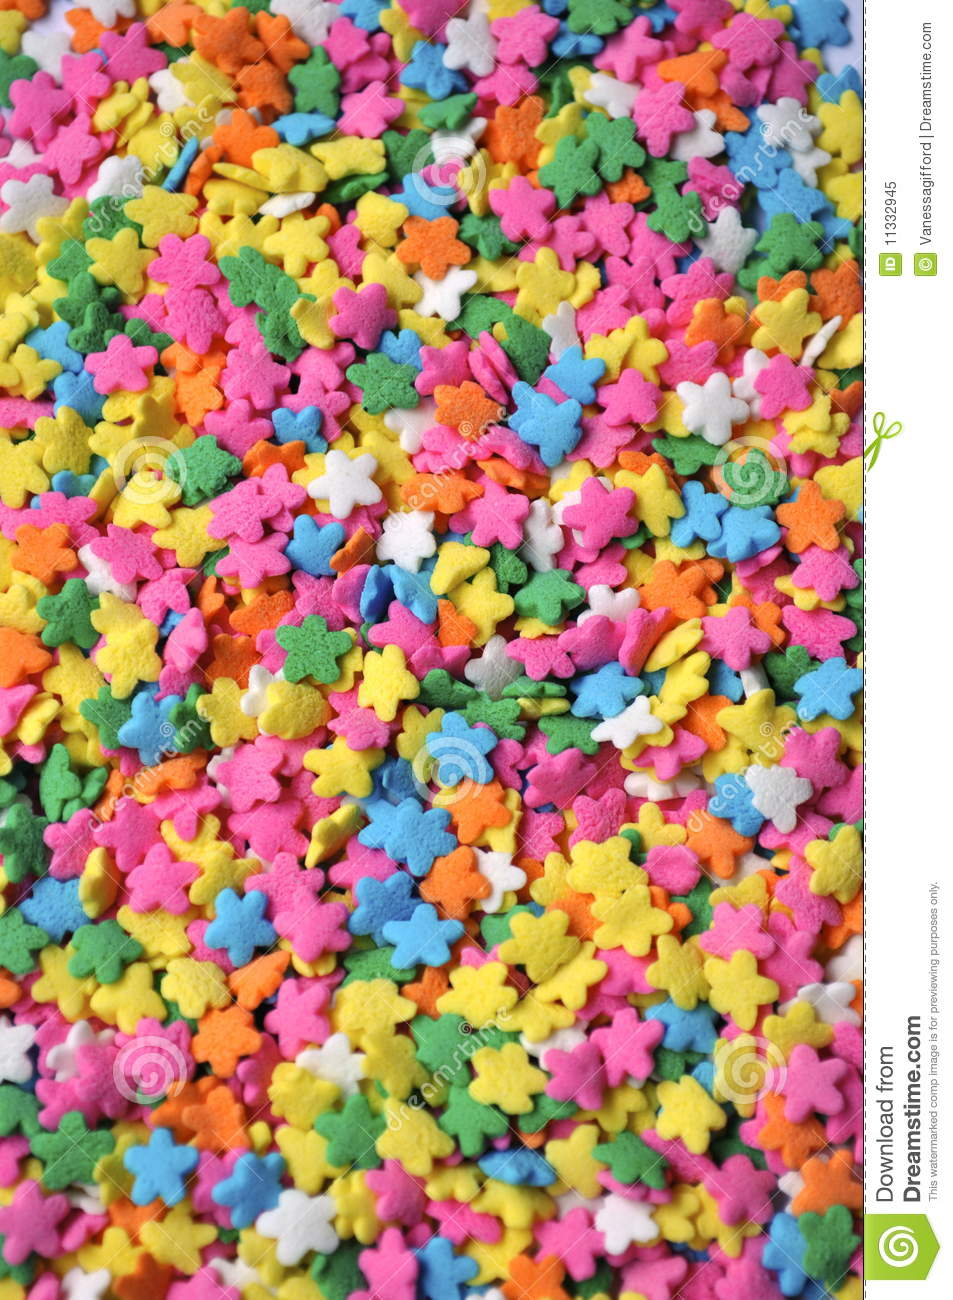 Wallpaper Iphone Pastel Colorful Star Sprinkles Stock Image Image Of Colorful